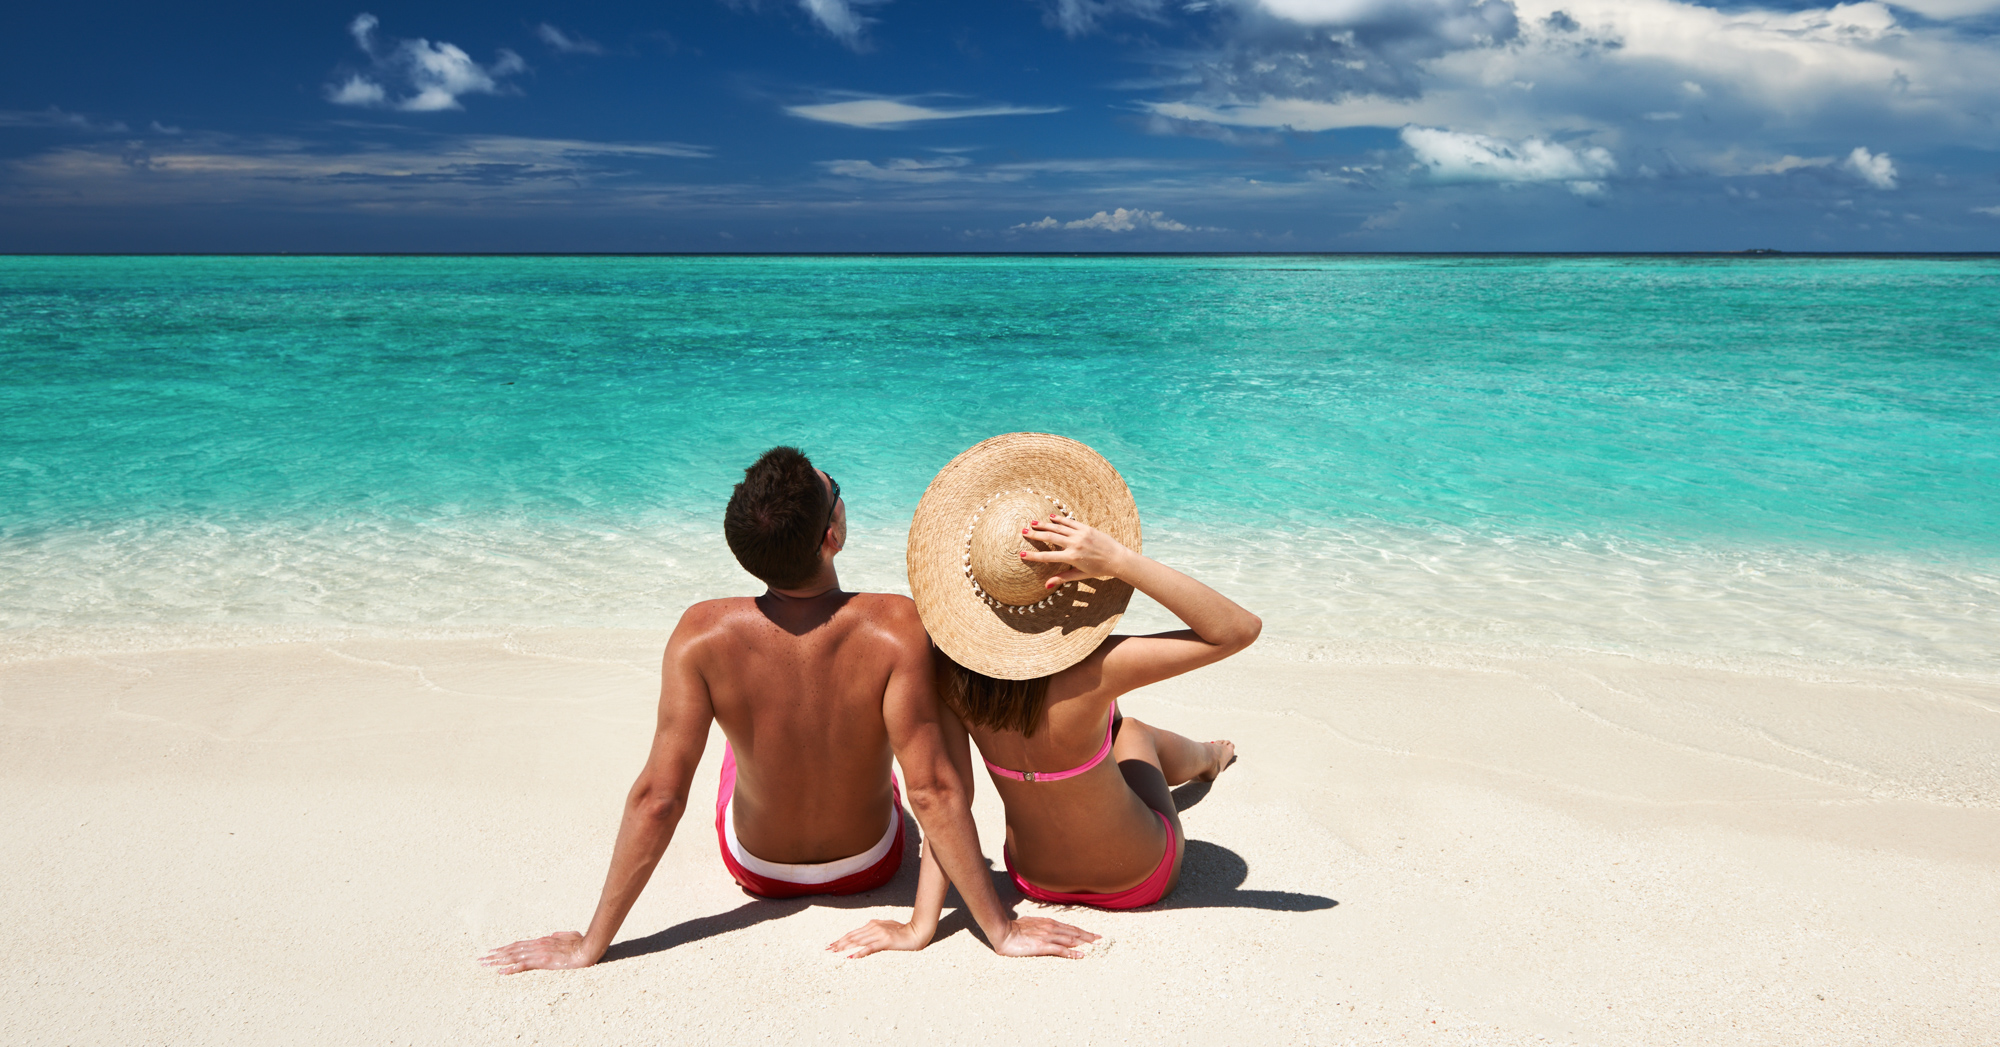 Bahamas tour and Bahamas day trip from Florida. Join our Bahamas Island Hopping tours across the Bahamas Out Islands